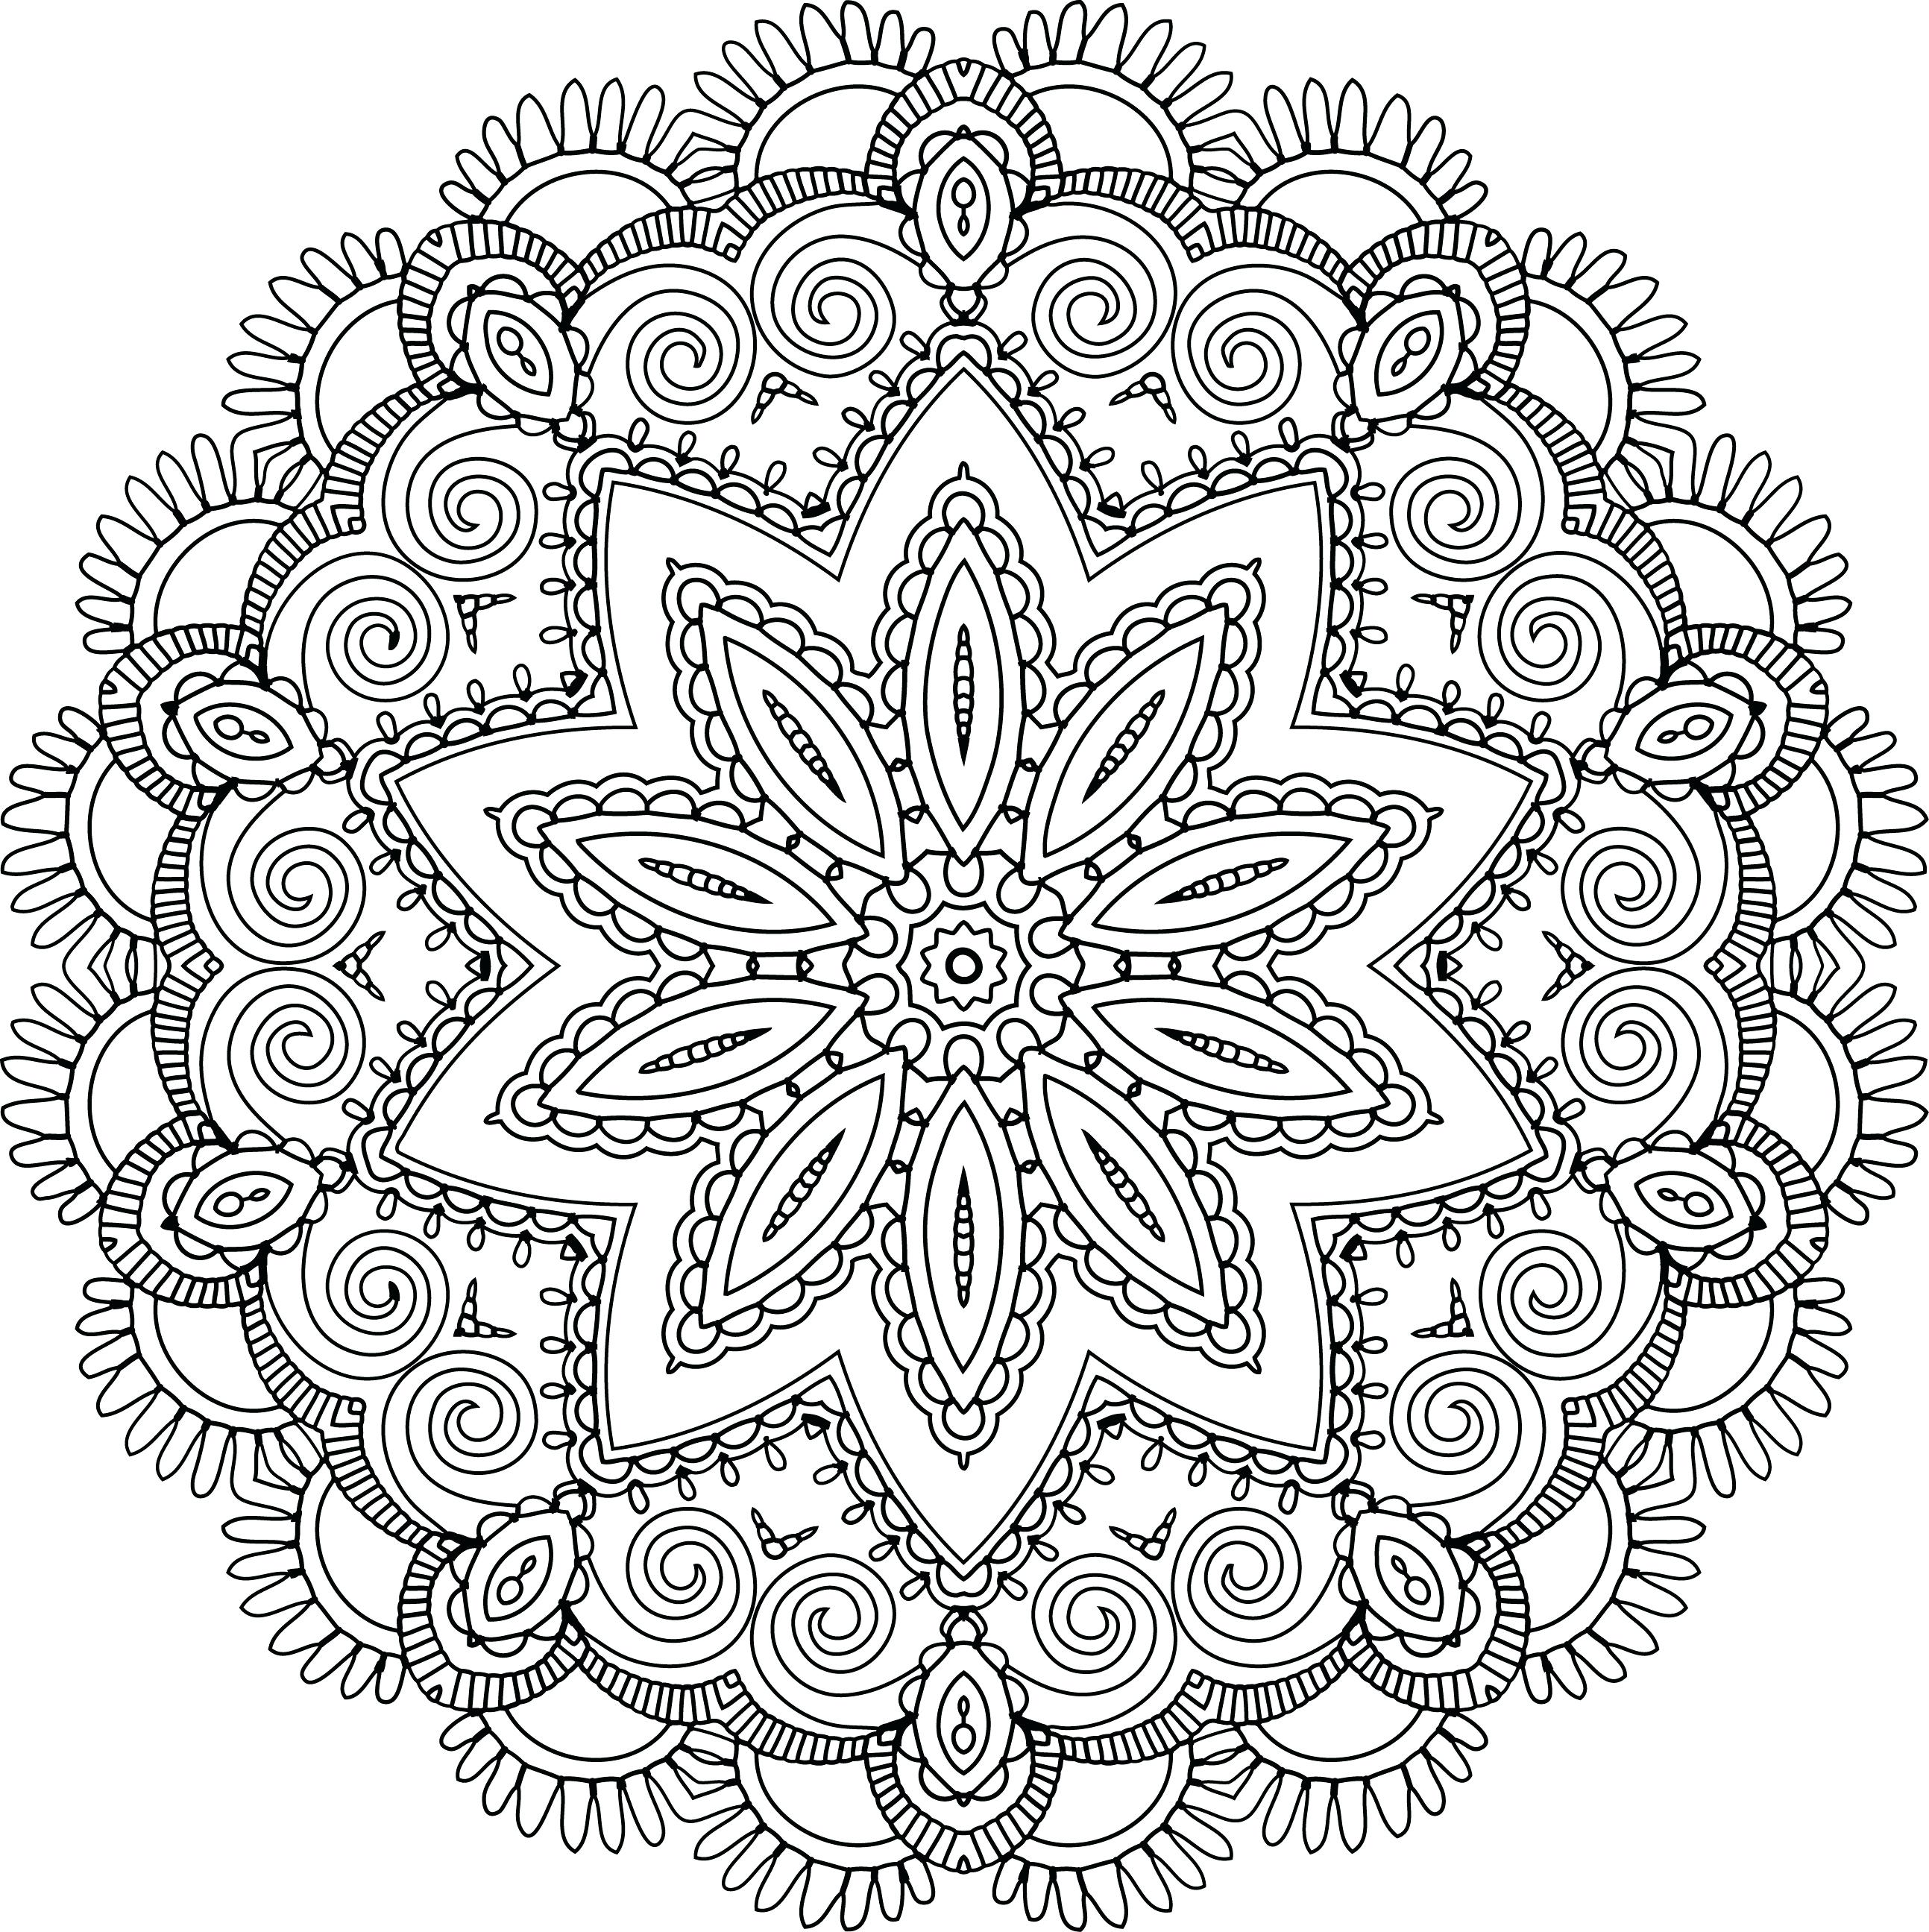 2587x2591 Coloring Kaleidoscope Coloring Pages Drawn Peacock Page